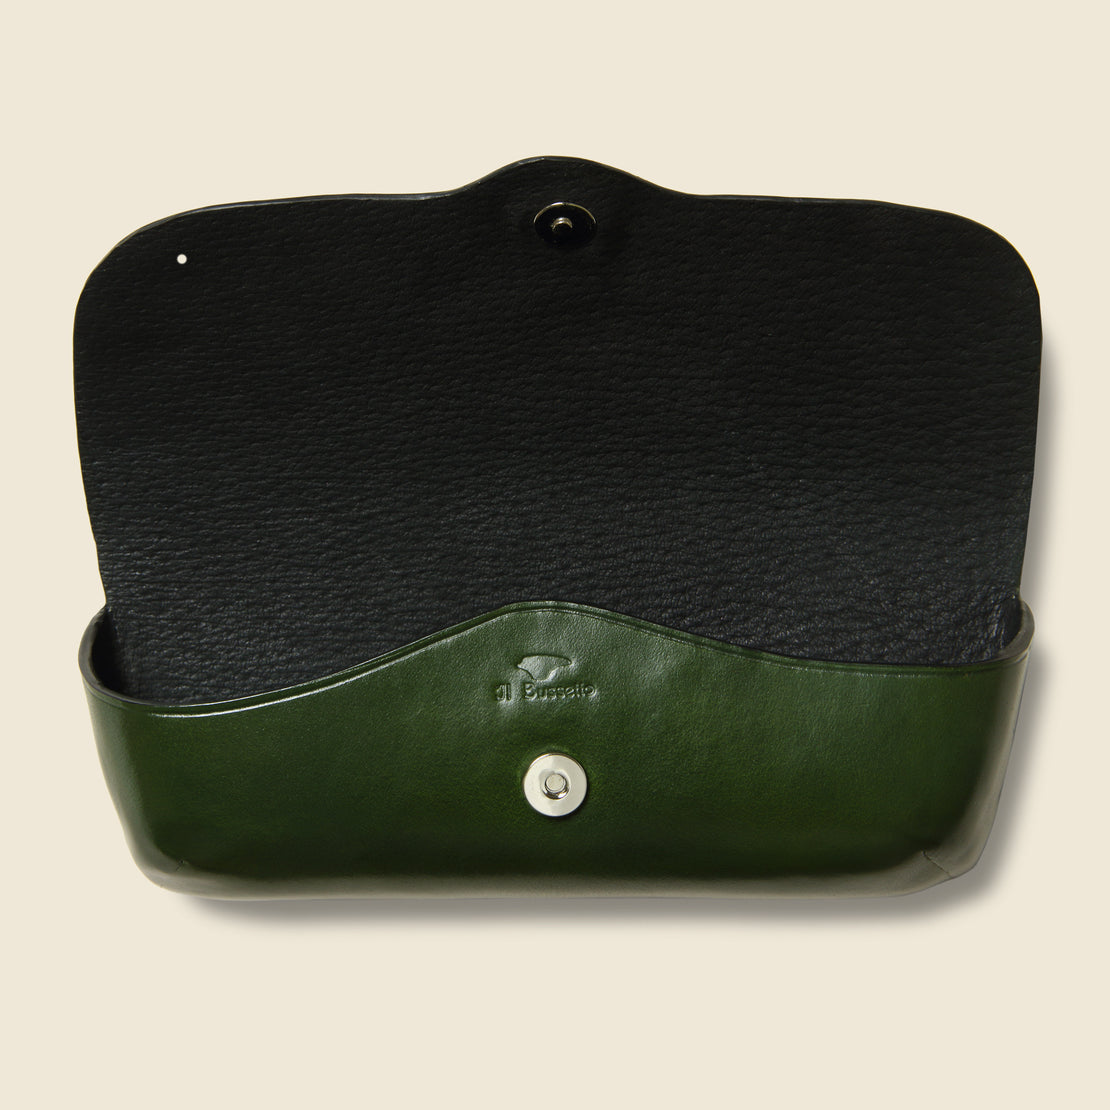 Eyeglass Case - Green - Il Bussetto - STAG Provisions - Accessories - Eyewear